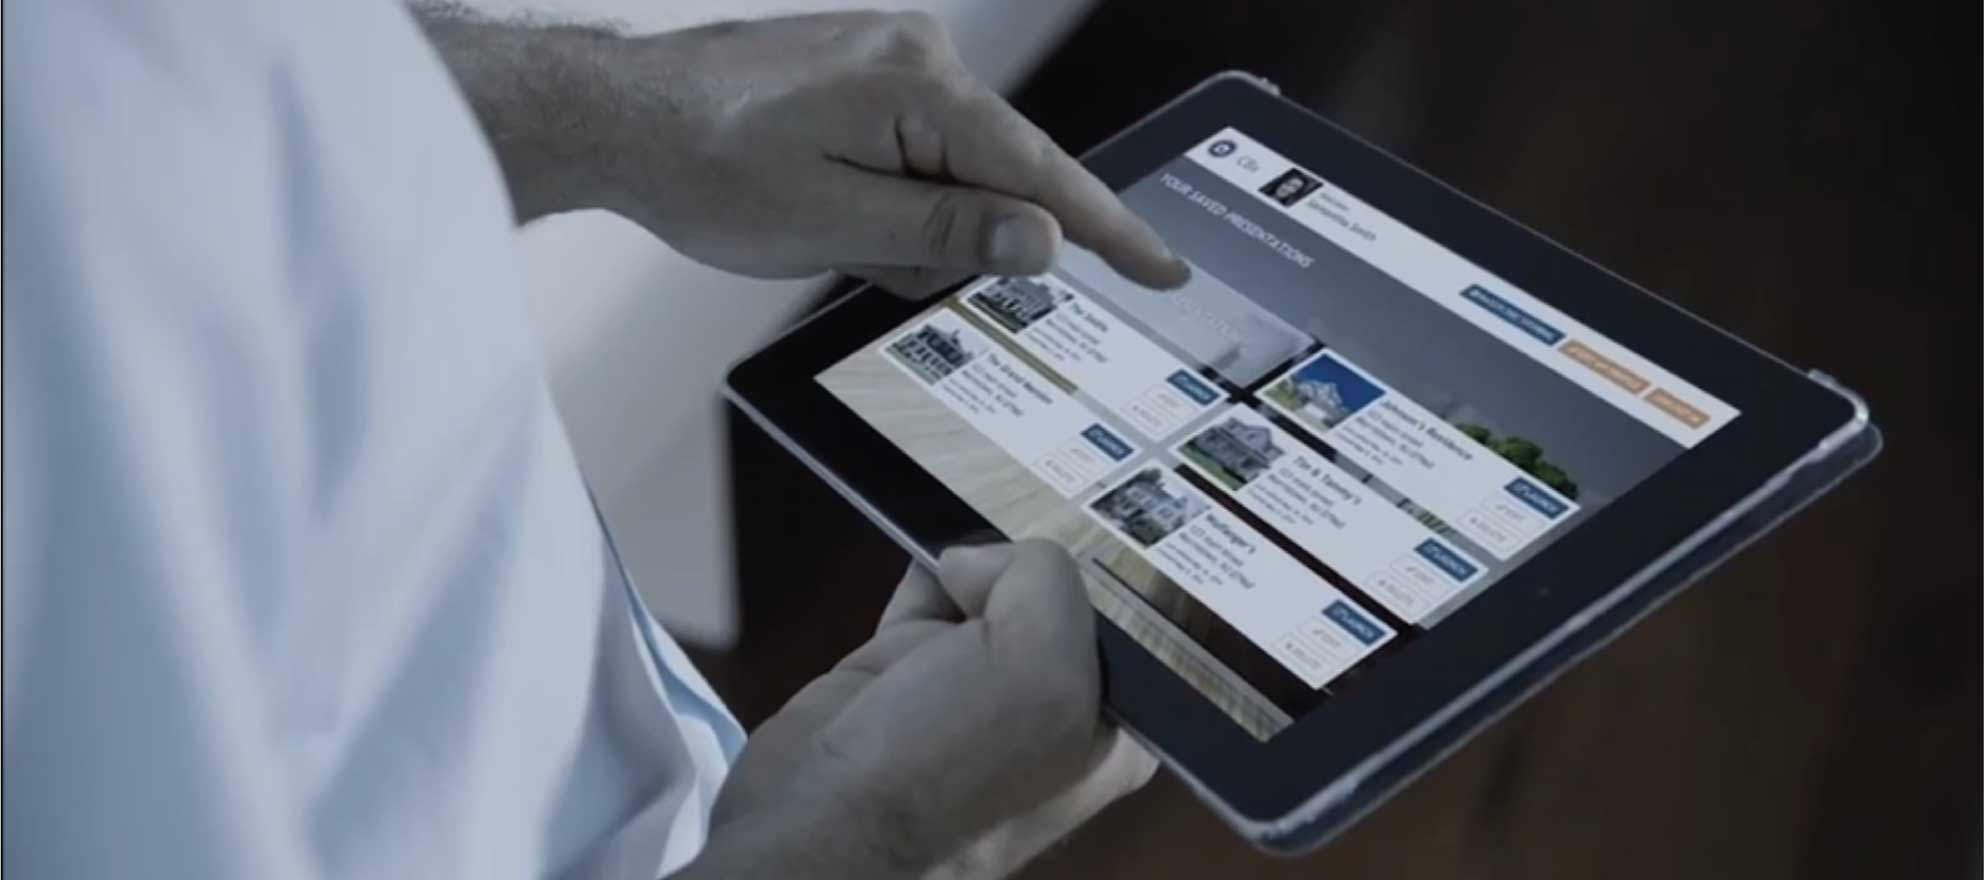 Franchisor's iPad app designed to help win listings with big data